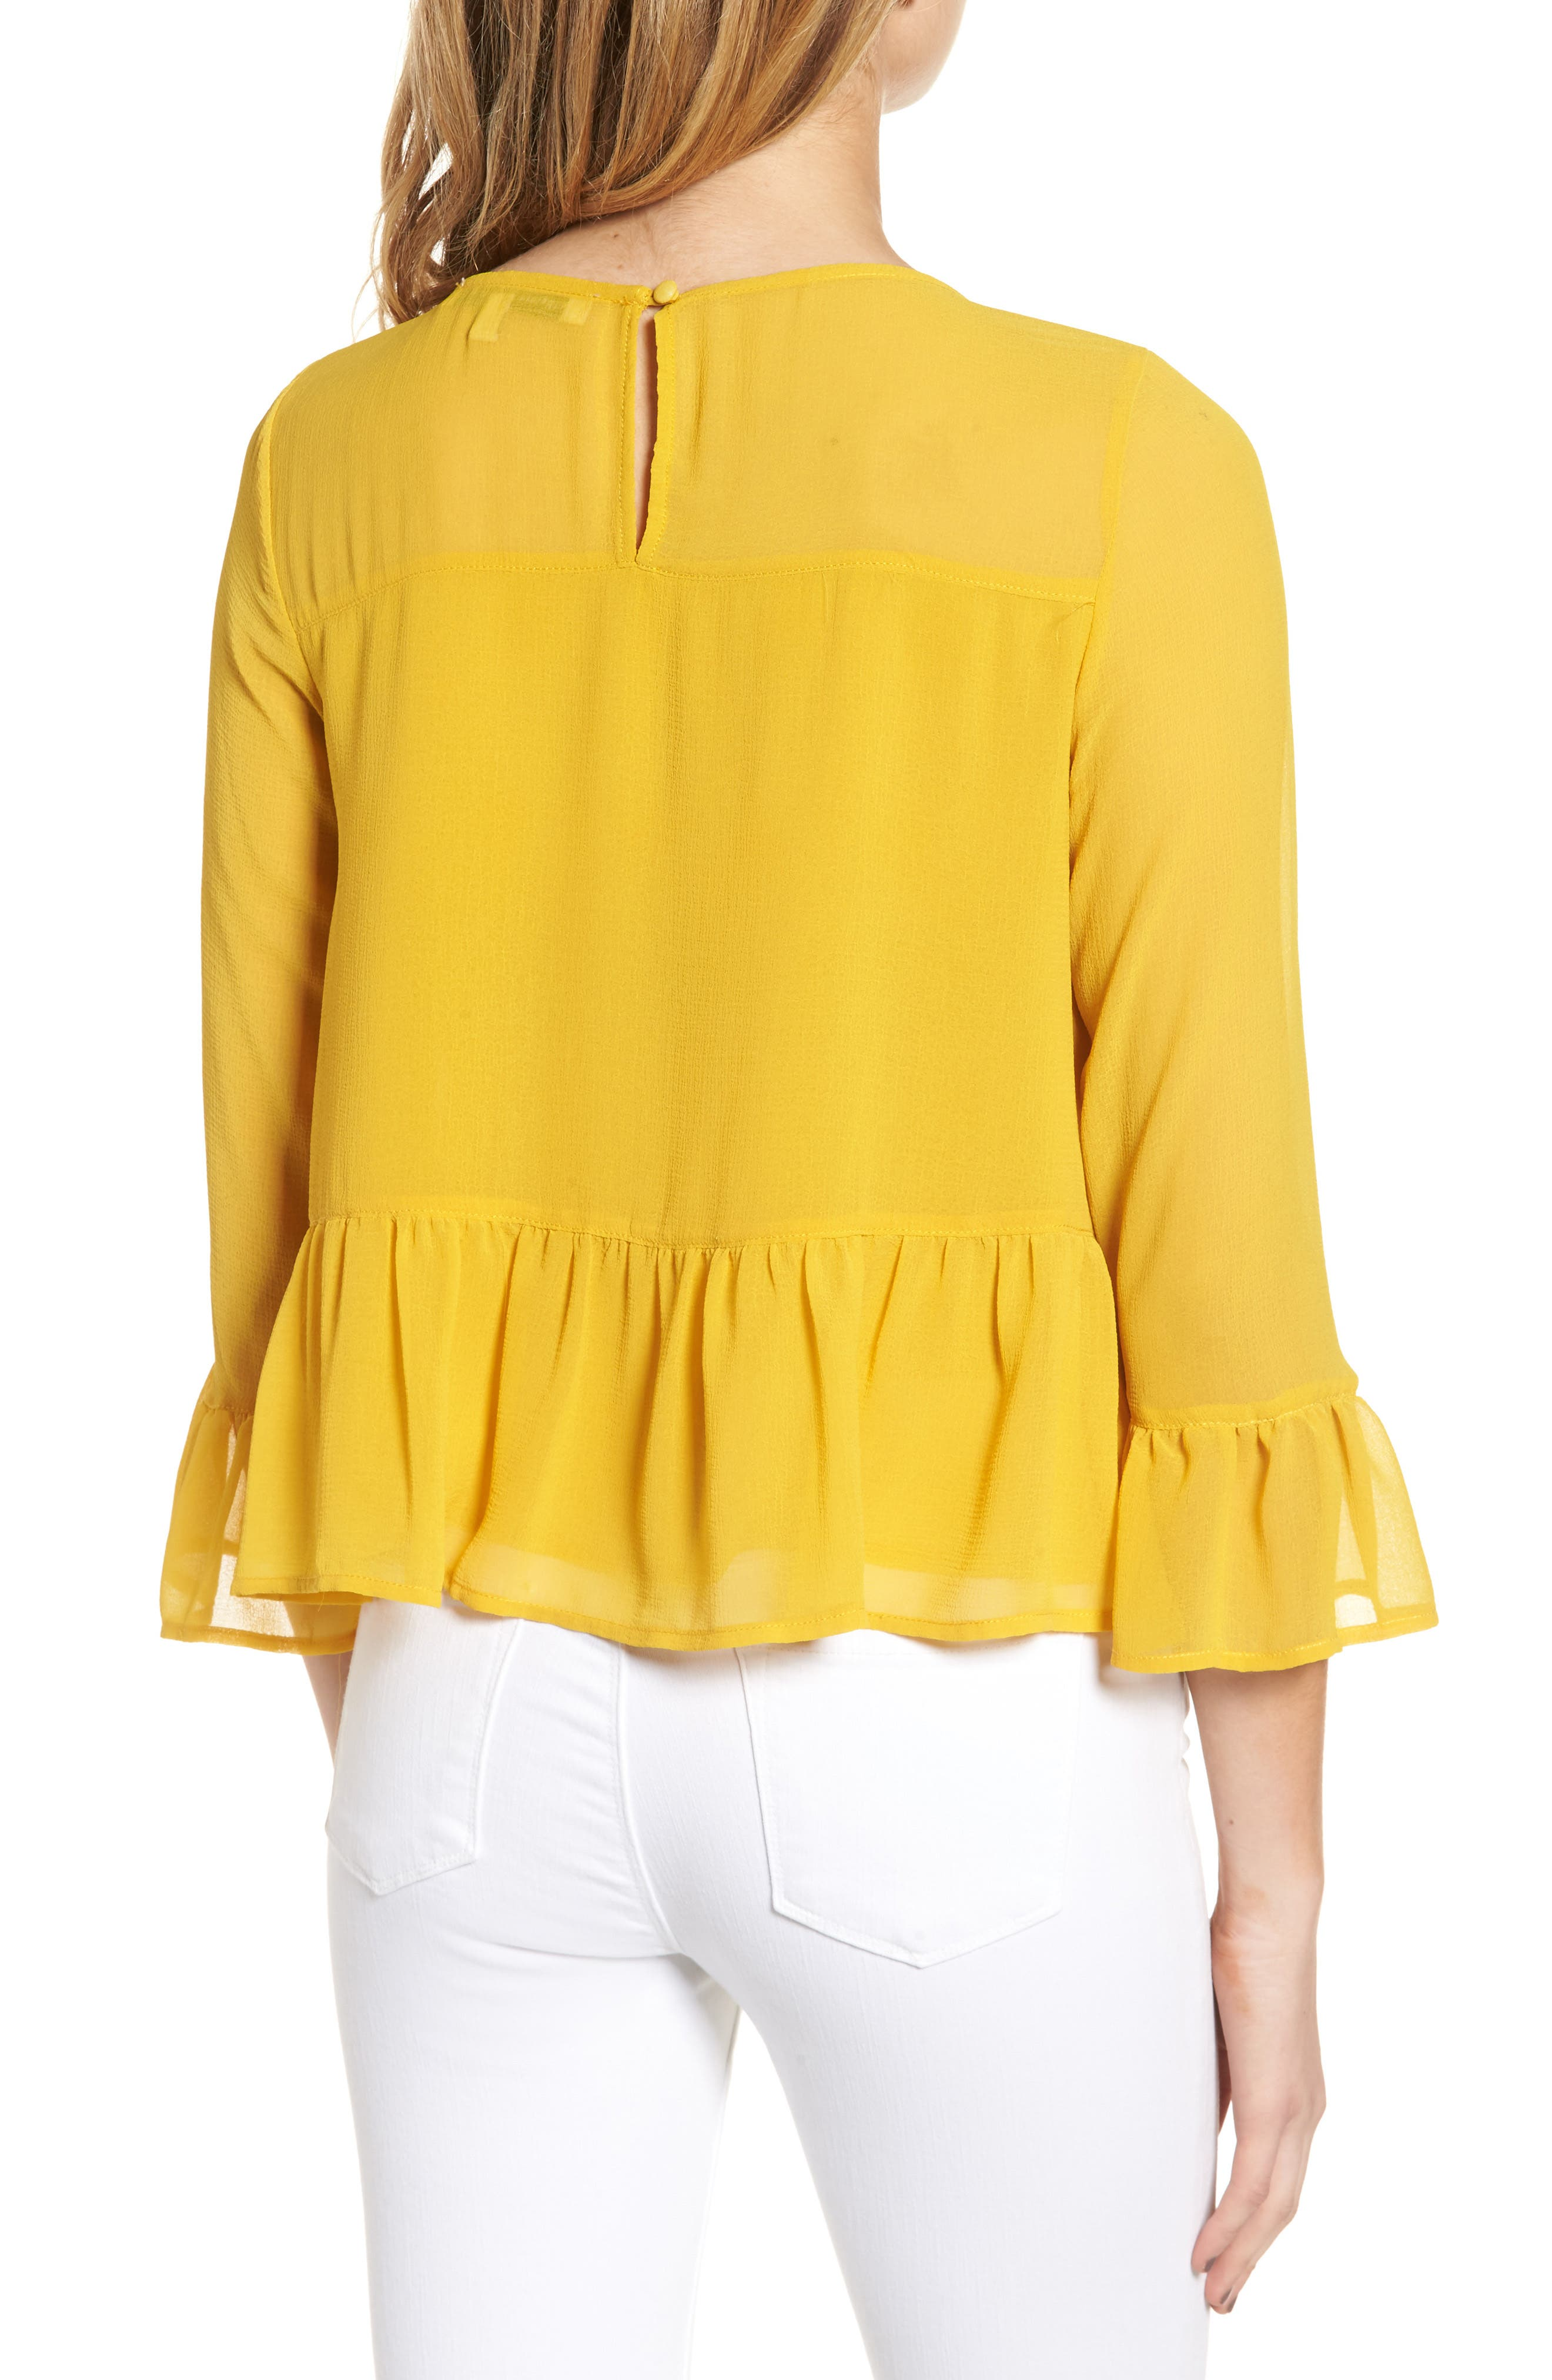 CUPCAKES AND CASHMERE, Katlyn Peplum Top, Alternate thumbnail 2, color, 700